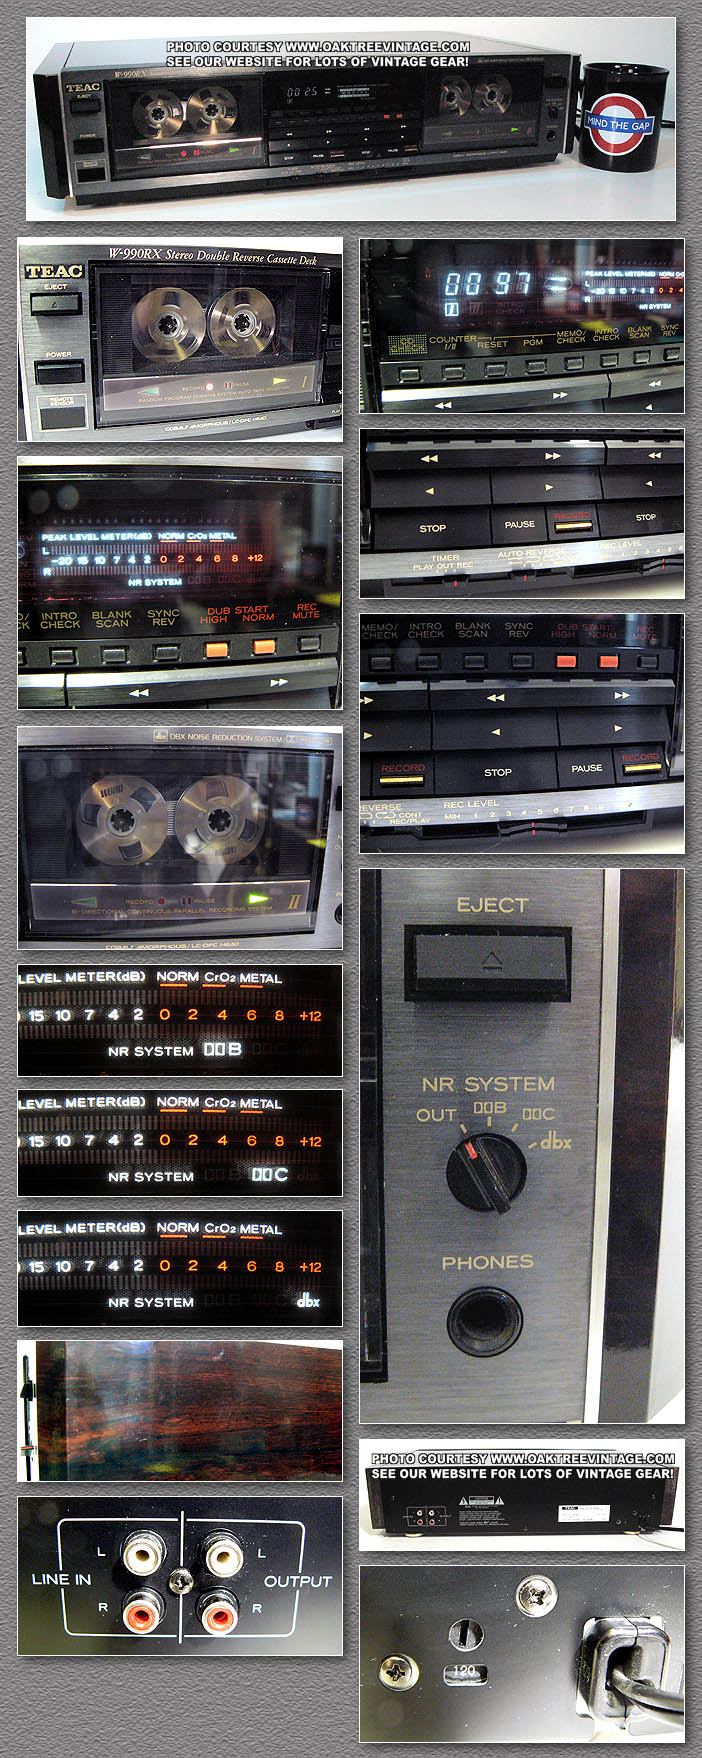 Vintage Teac Stereo Parts Spares